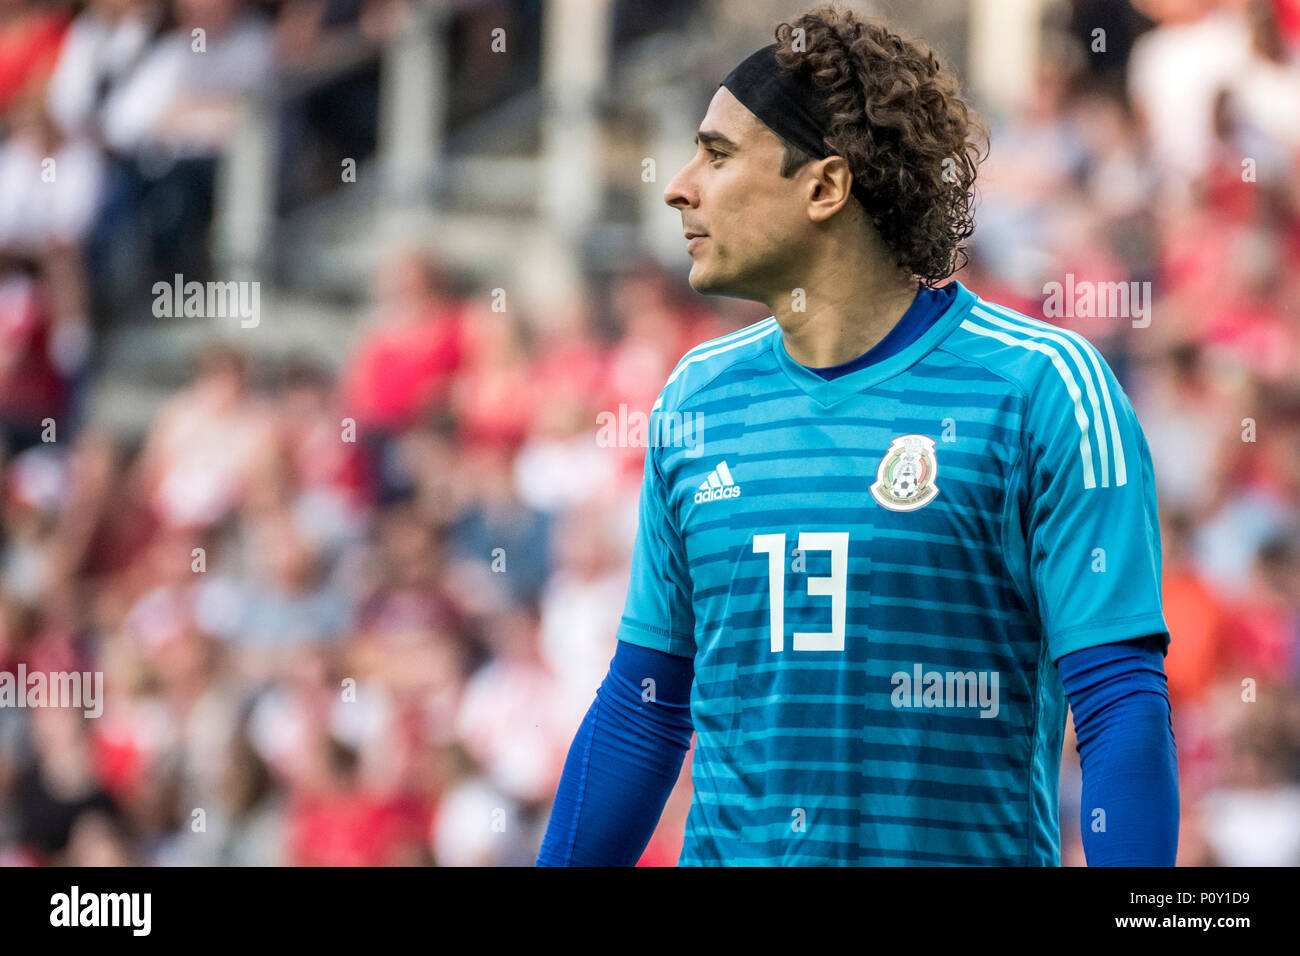 02d12c8a962 13 Guillermo Ochoa Stock Photos & 13 Guillermo Ochoa Stock Images ...